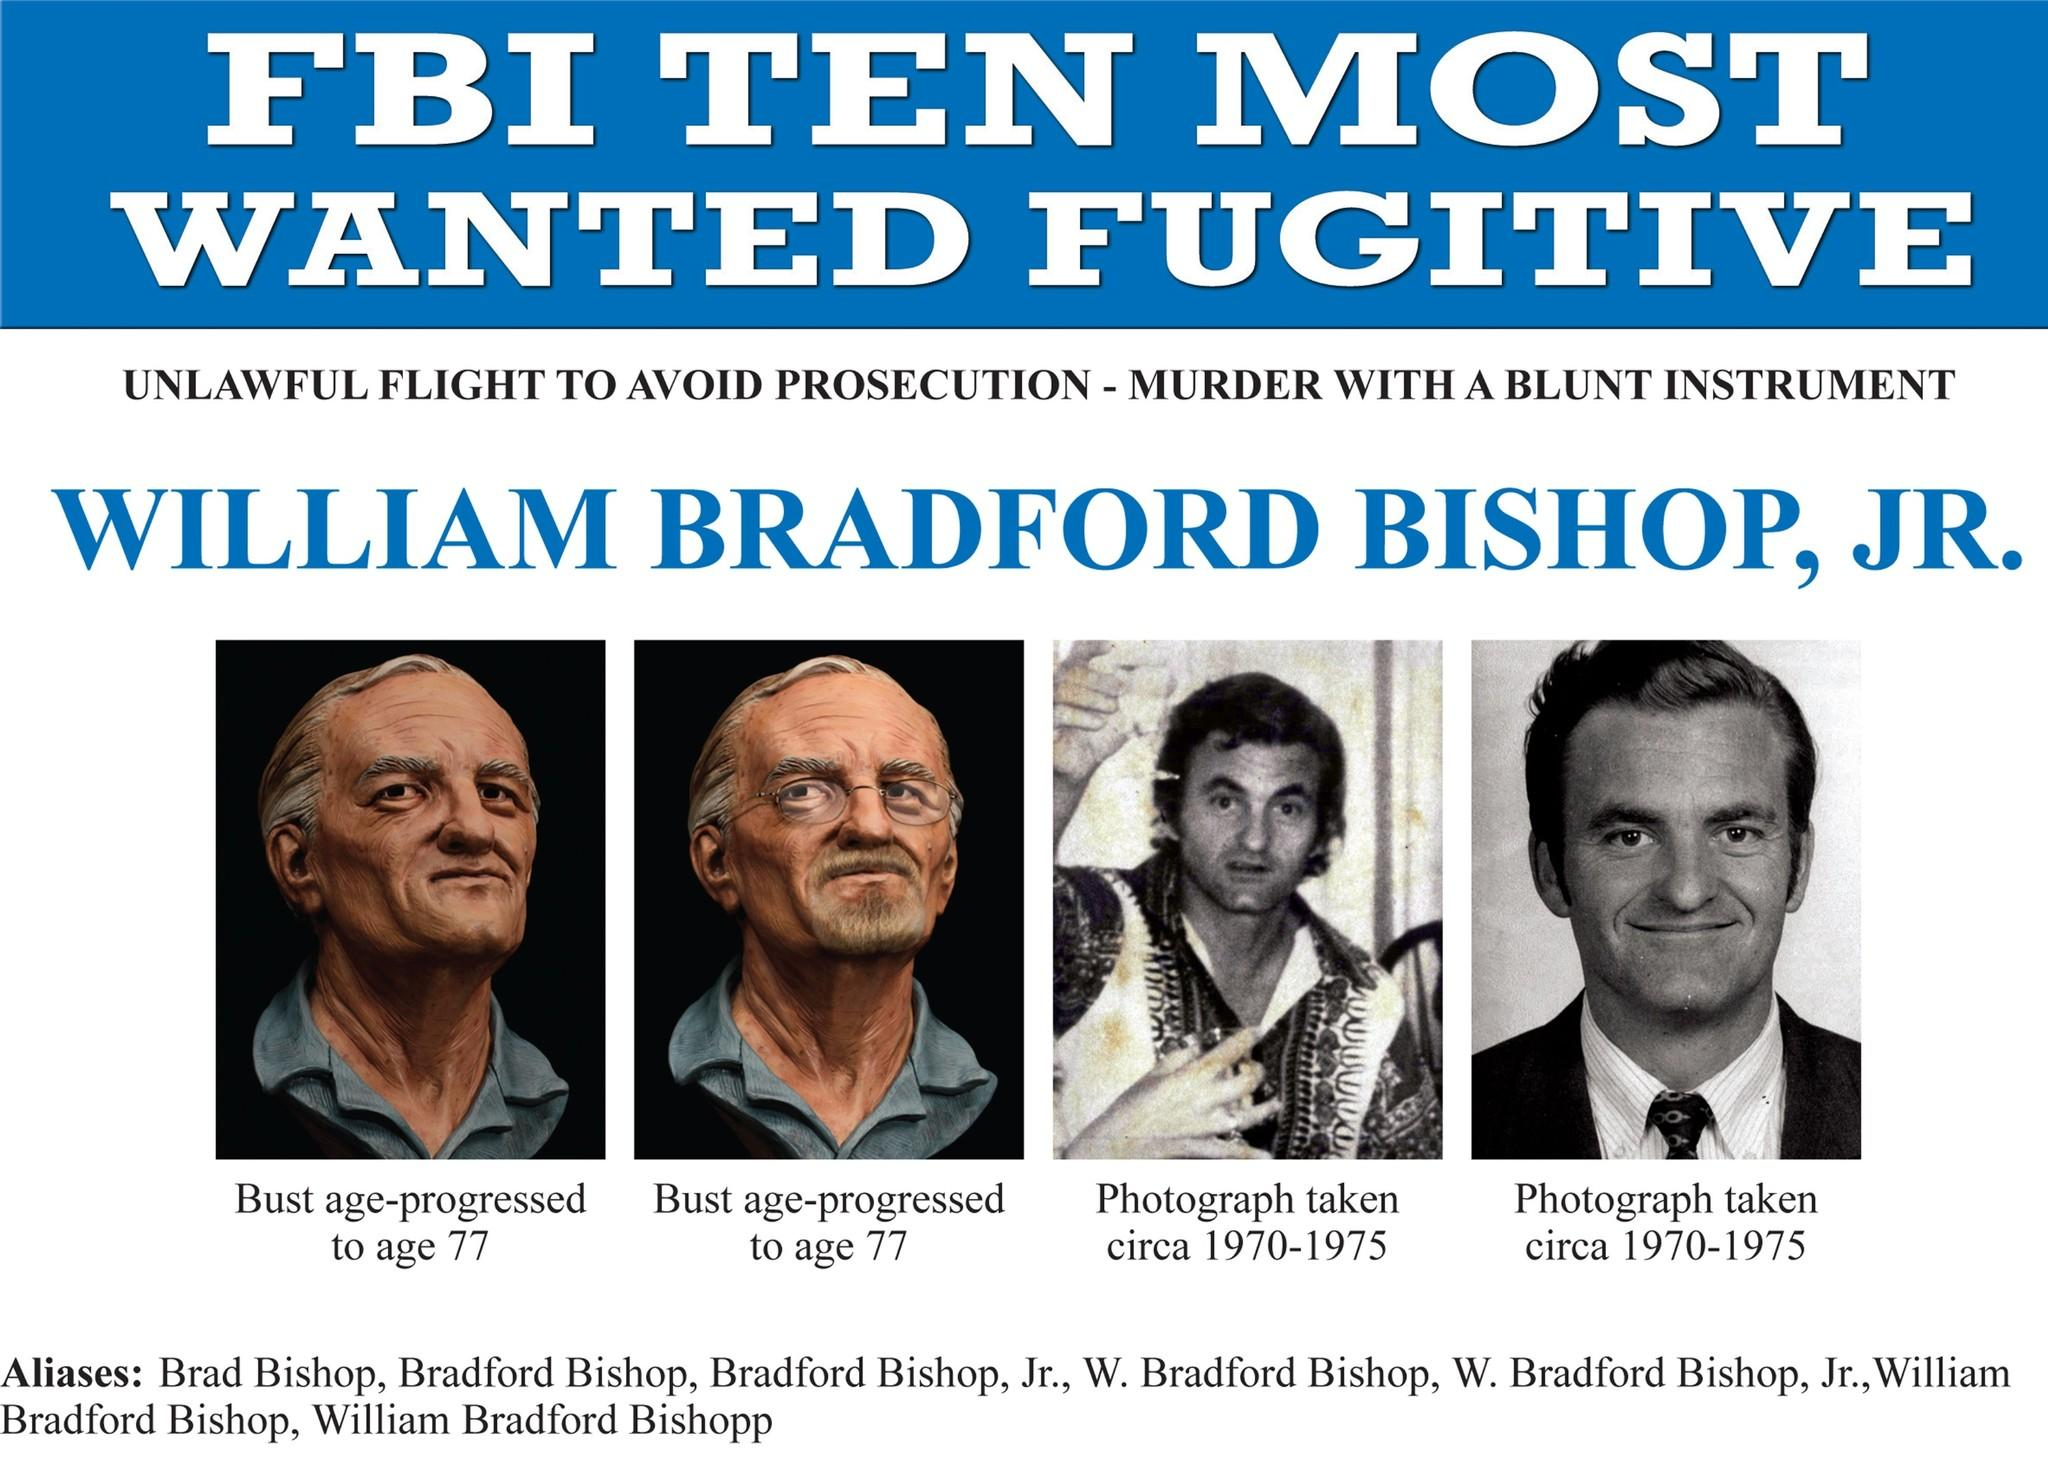 William Bradford Bishop, Jr., wanted for the brutal murders of his wife, mother, and three sons in Maryland nearly four decades ago, and has been named to the Ten Most Wanted Fugitives list.